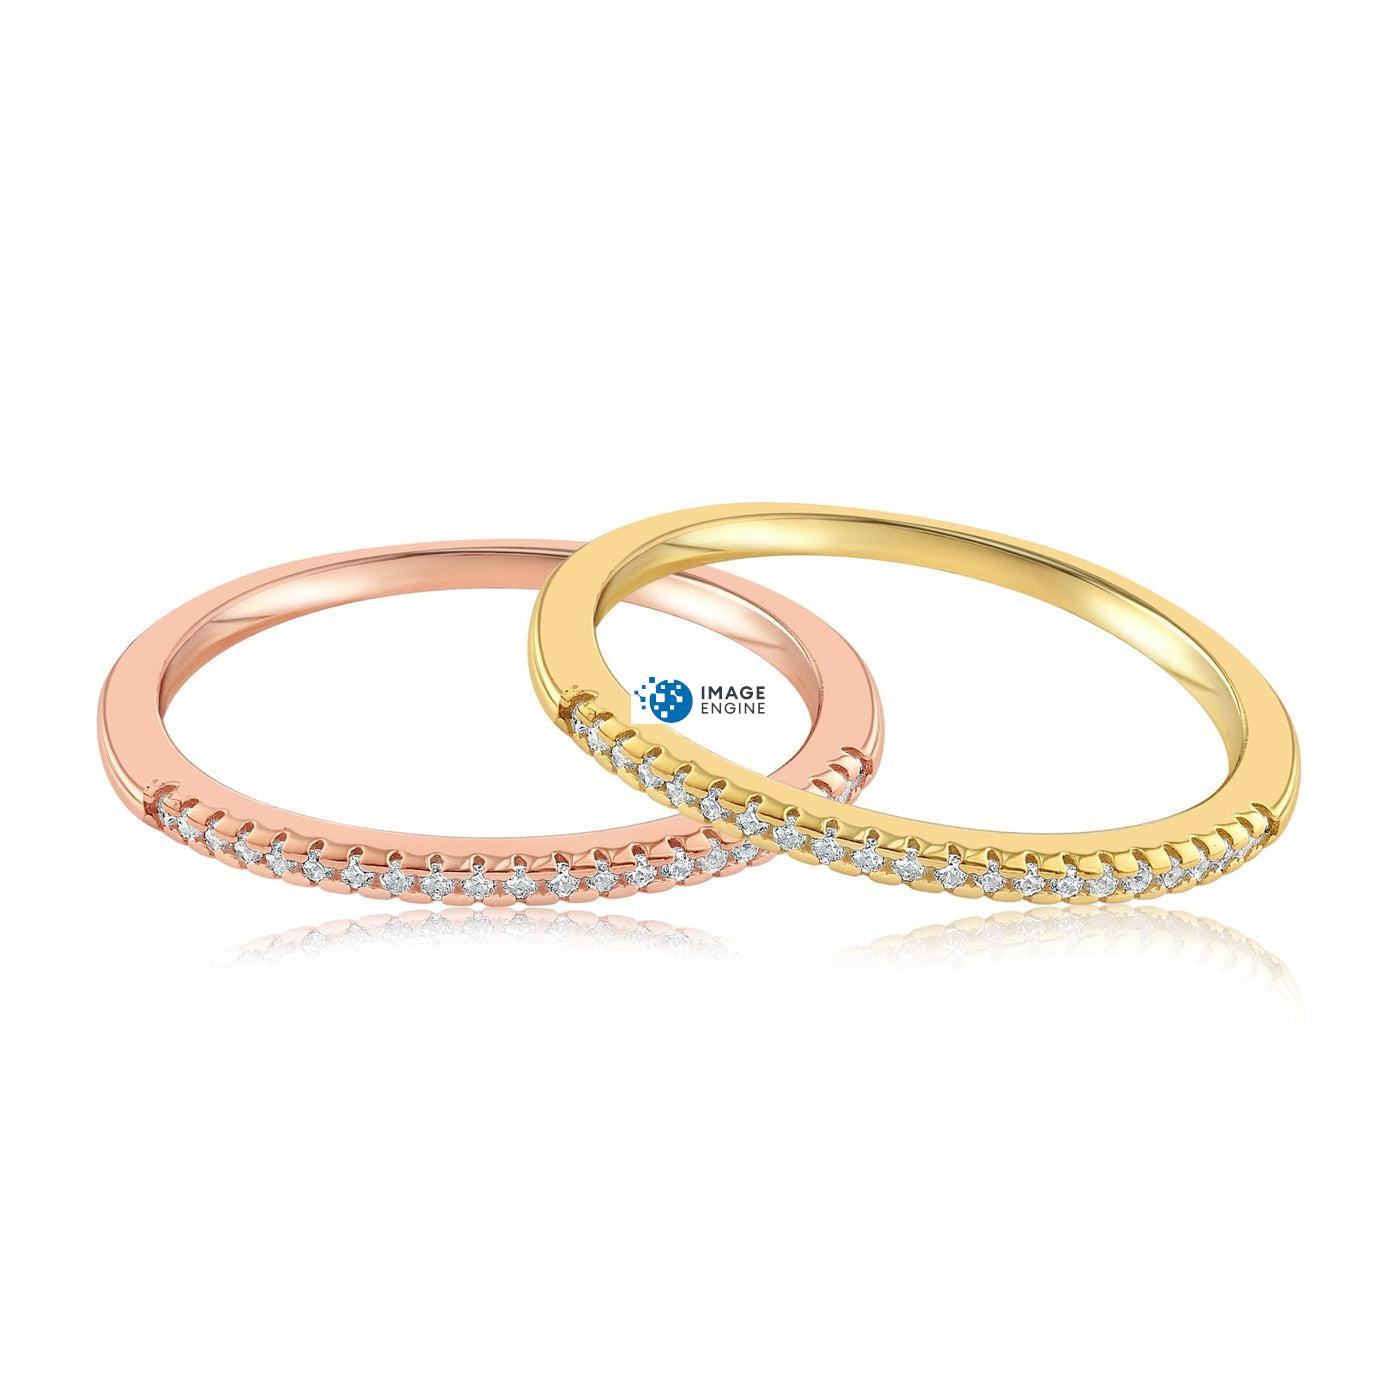 Brianna Bezel Ring - Front View SideBy Side - 18K Rose Gold Vermeil and 18K Yellow Gold Vermeil